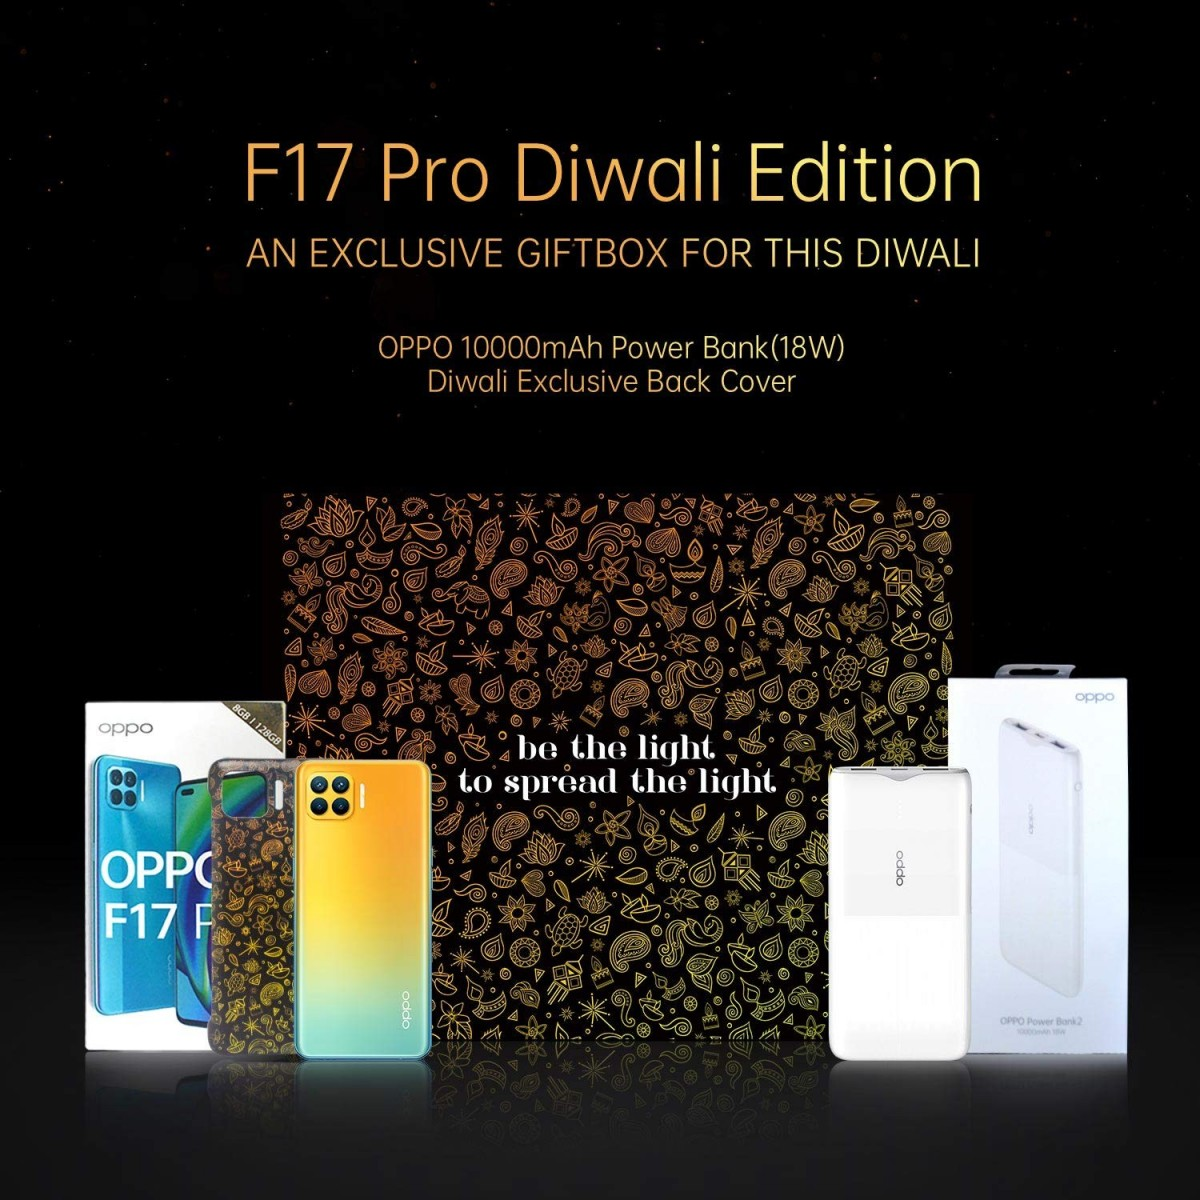 Oppo F17 Pro Diwali Edition launches in India with generous retail package